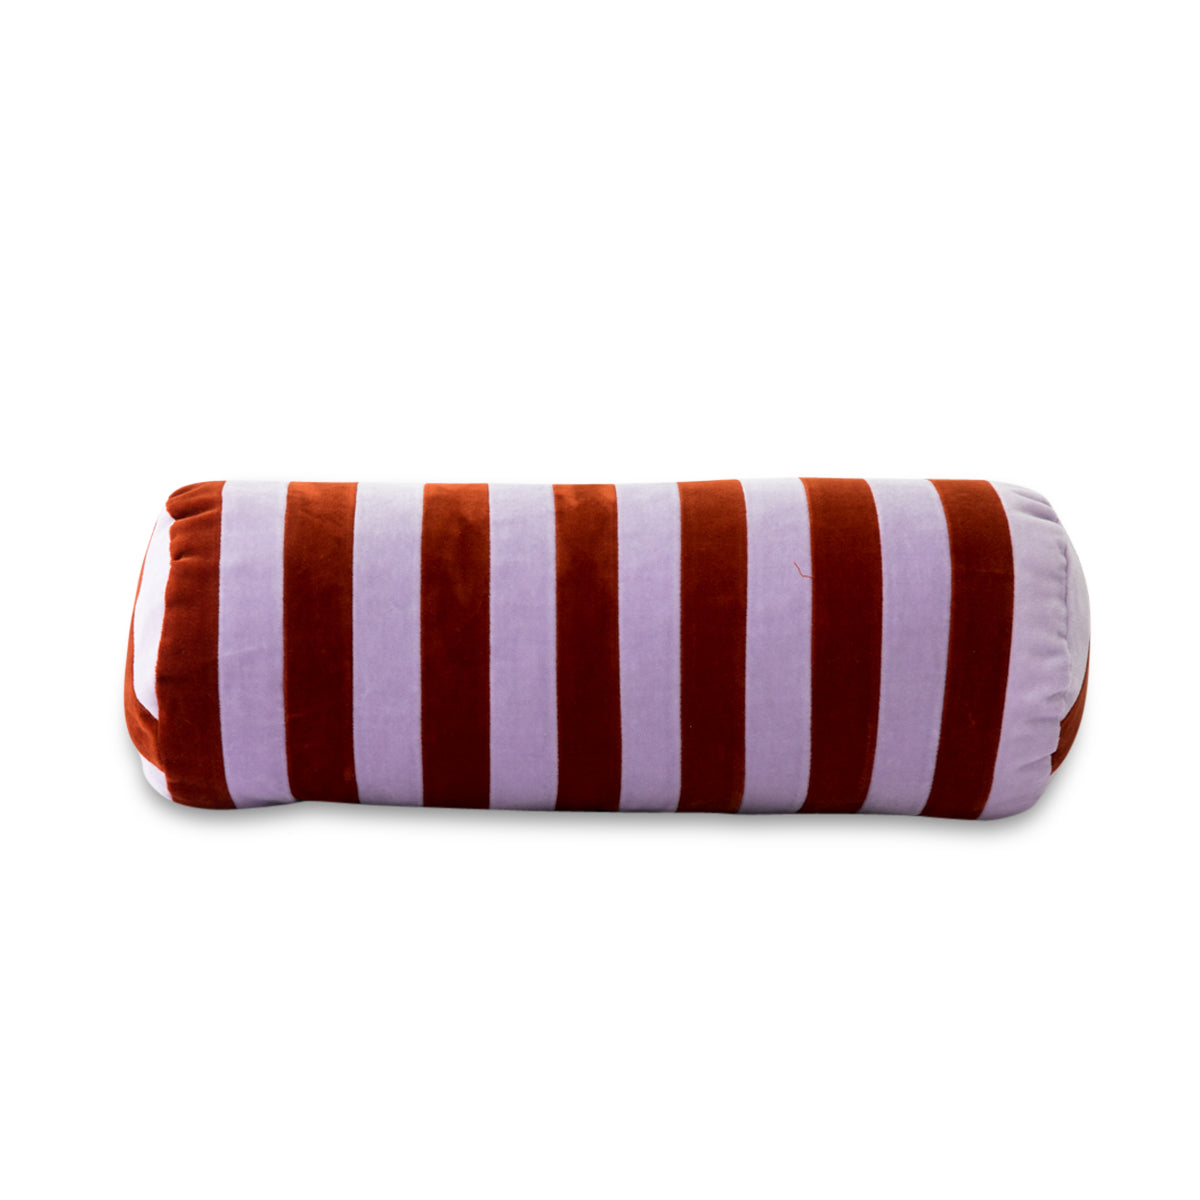 Furbish Studio - Baies Striped Velvet Bolster Pillow - Lilac + Terra Cotta front view